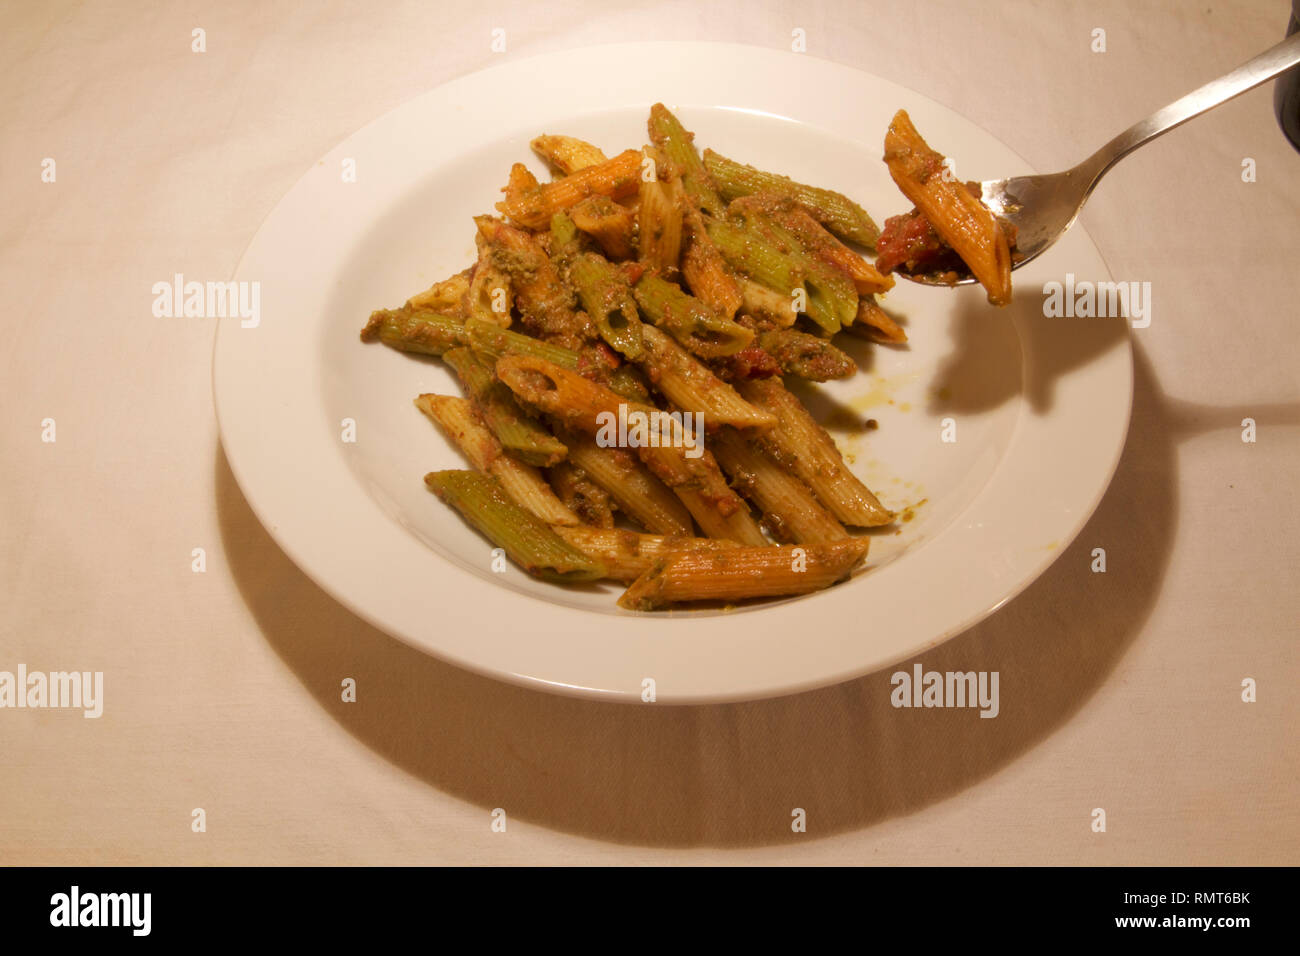 Dubai-Penne pasta cooked with sauce served on a white plate 9 - Stock Image